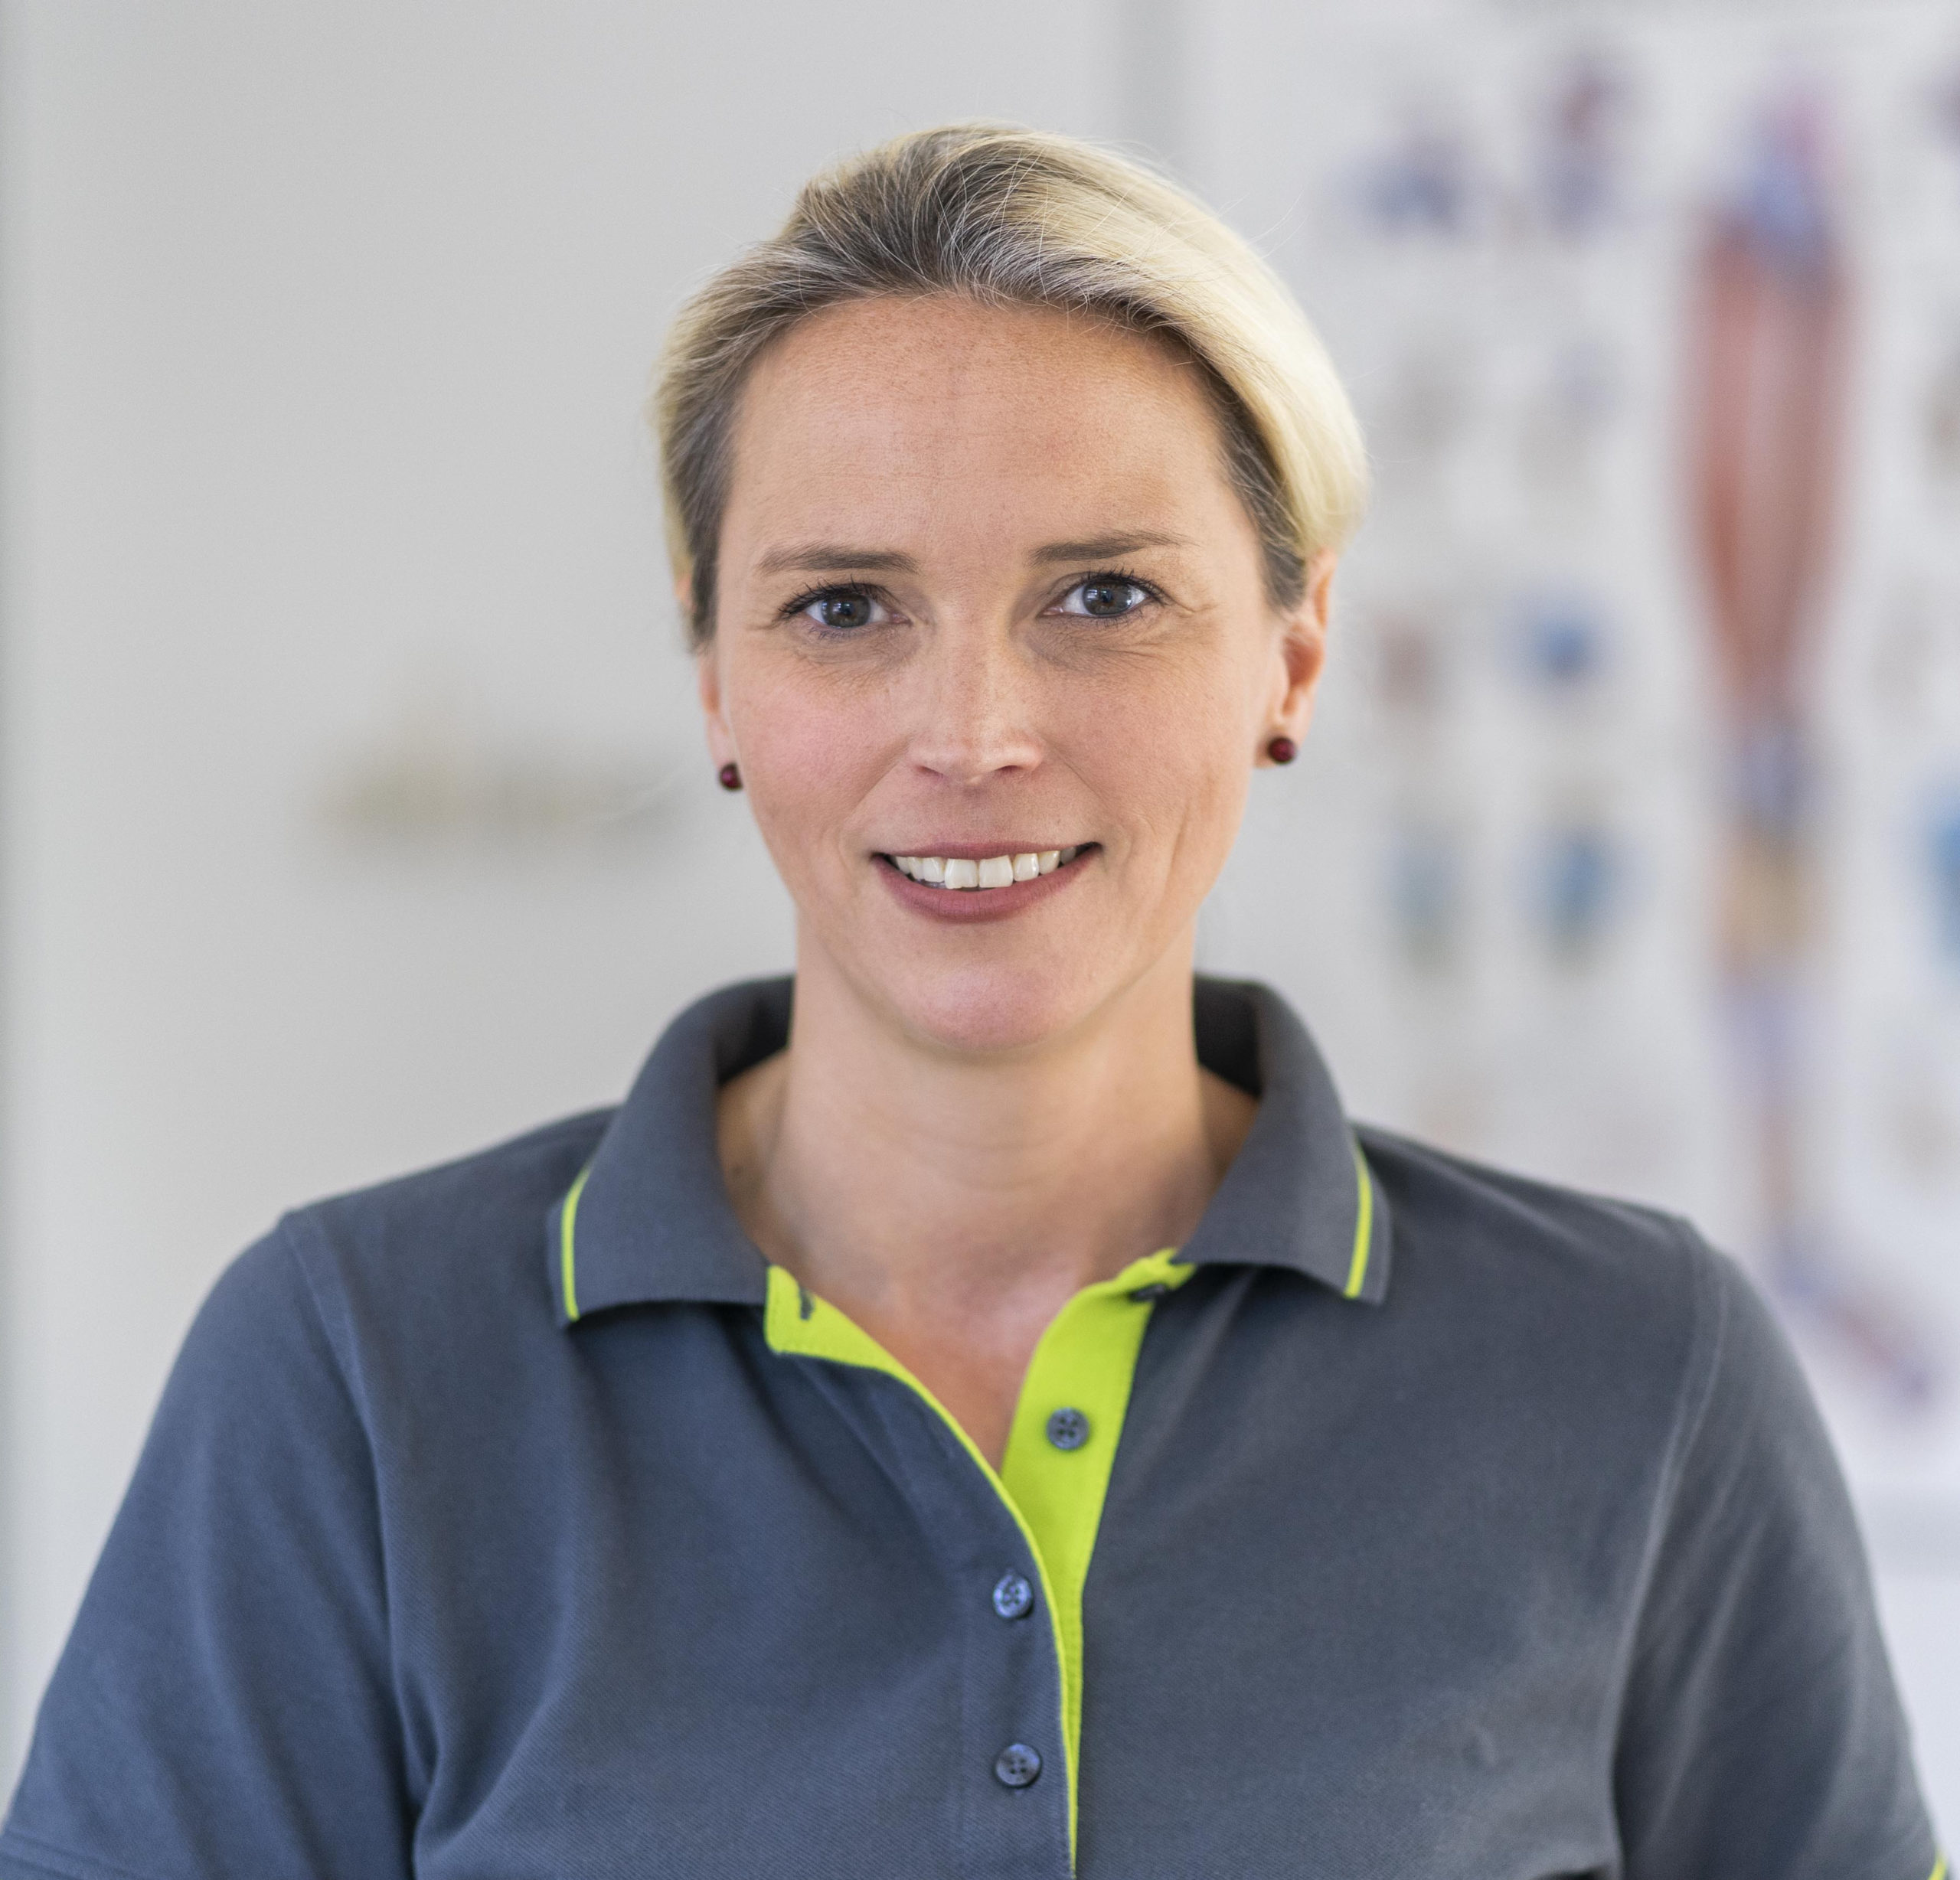 Dr. med. Nicole Dongowski